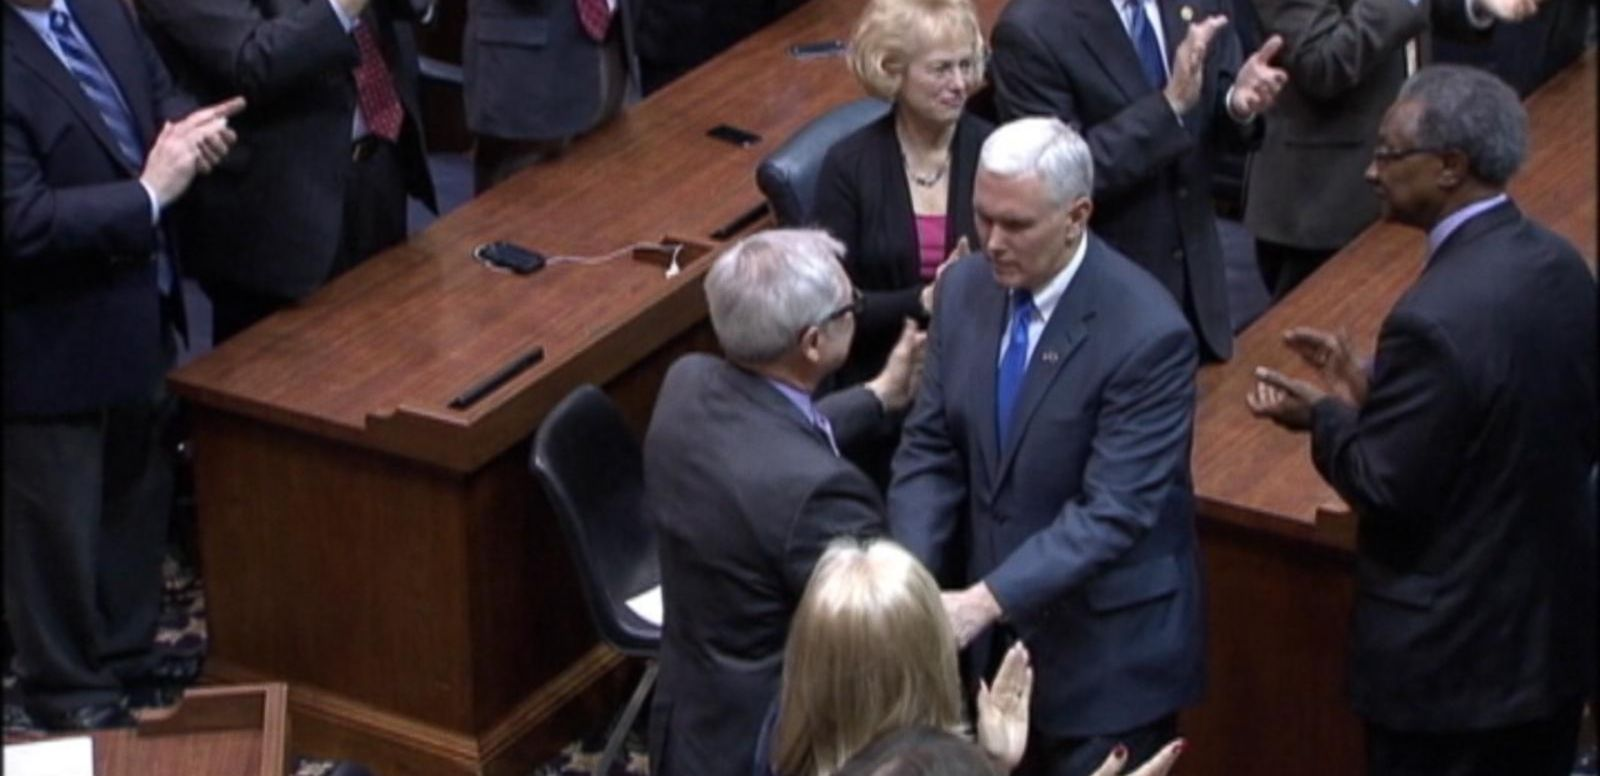 VIDEO: Indiana Governor May Backtrack on Religious Freedom Bill